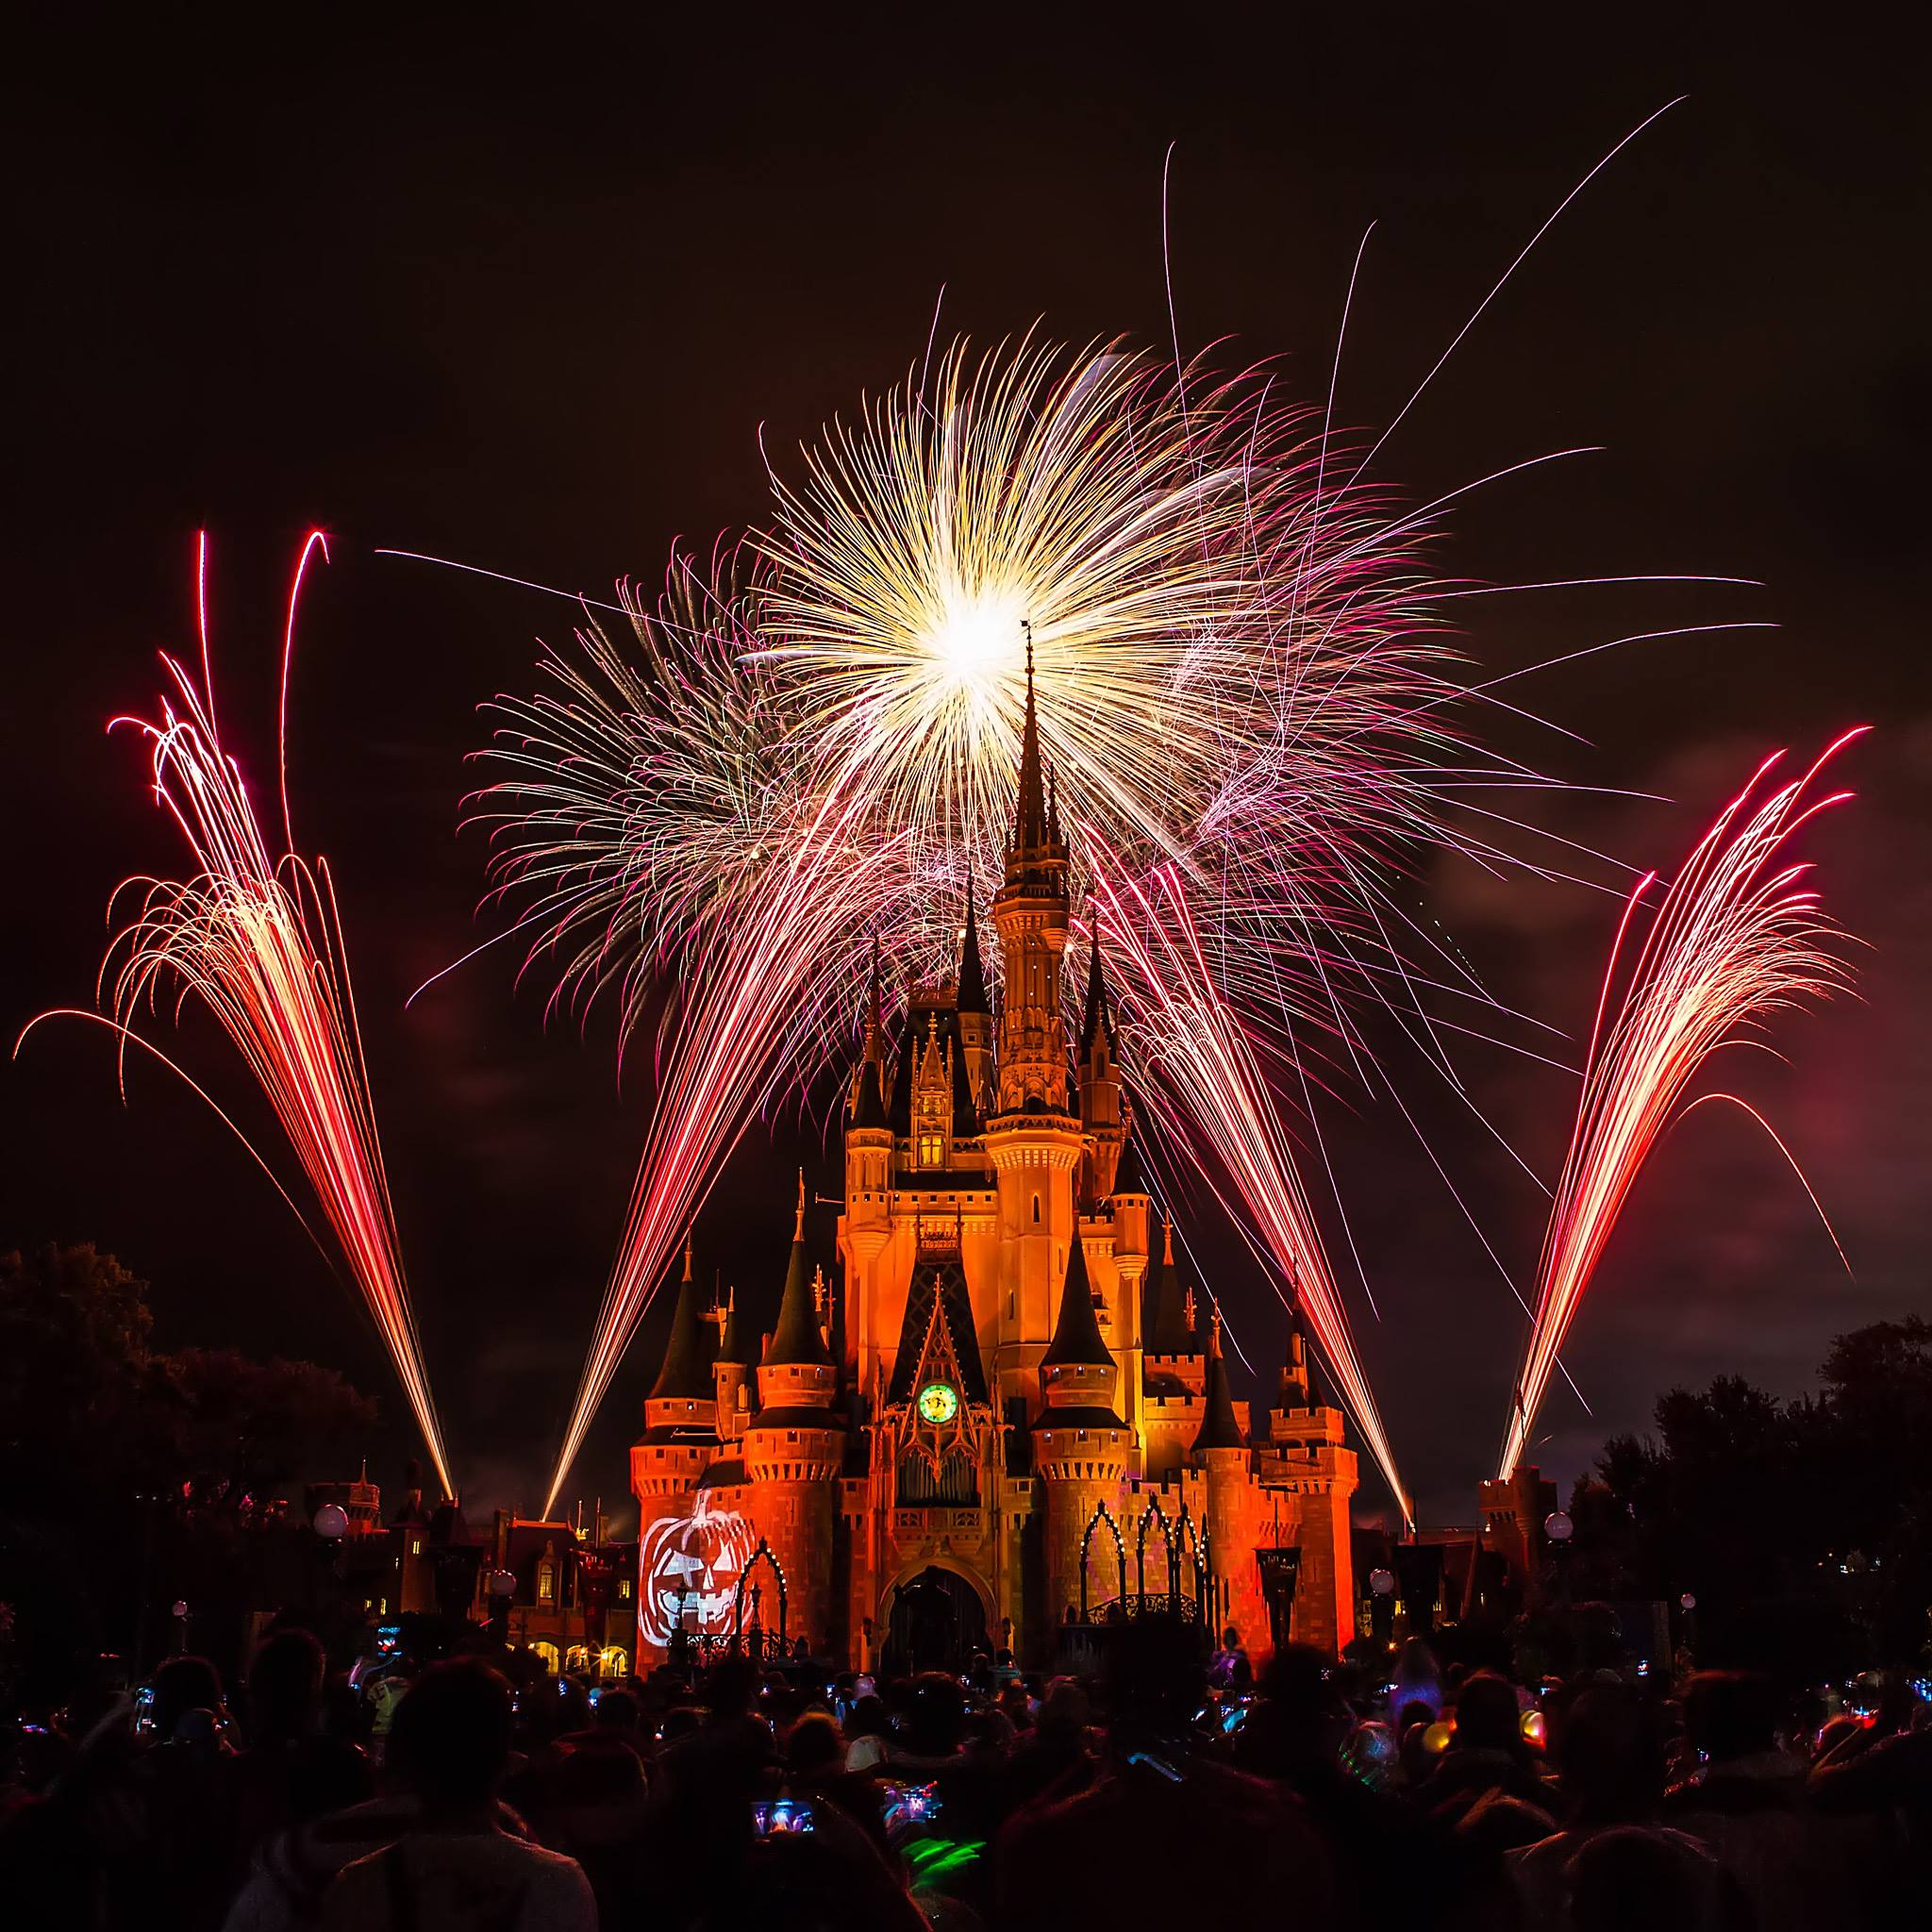 Fireworks at Mickey's Not So Scary Halloween Party